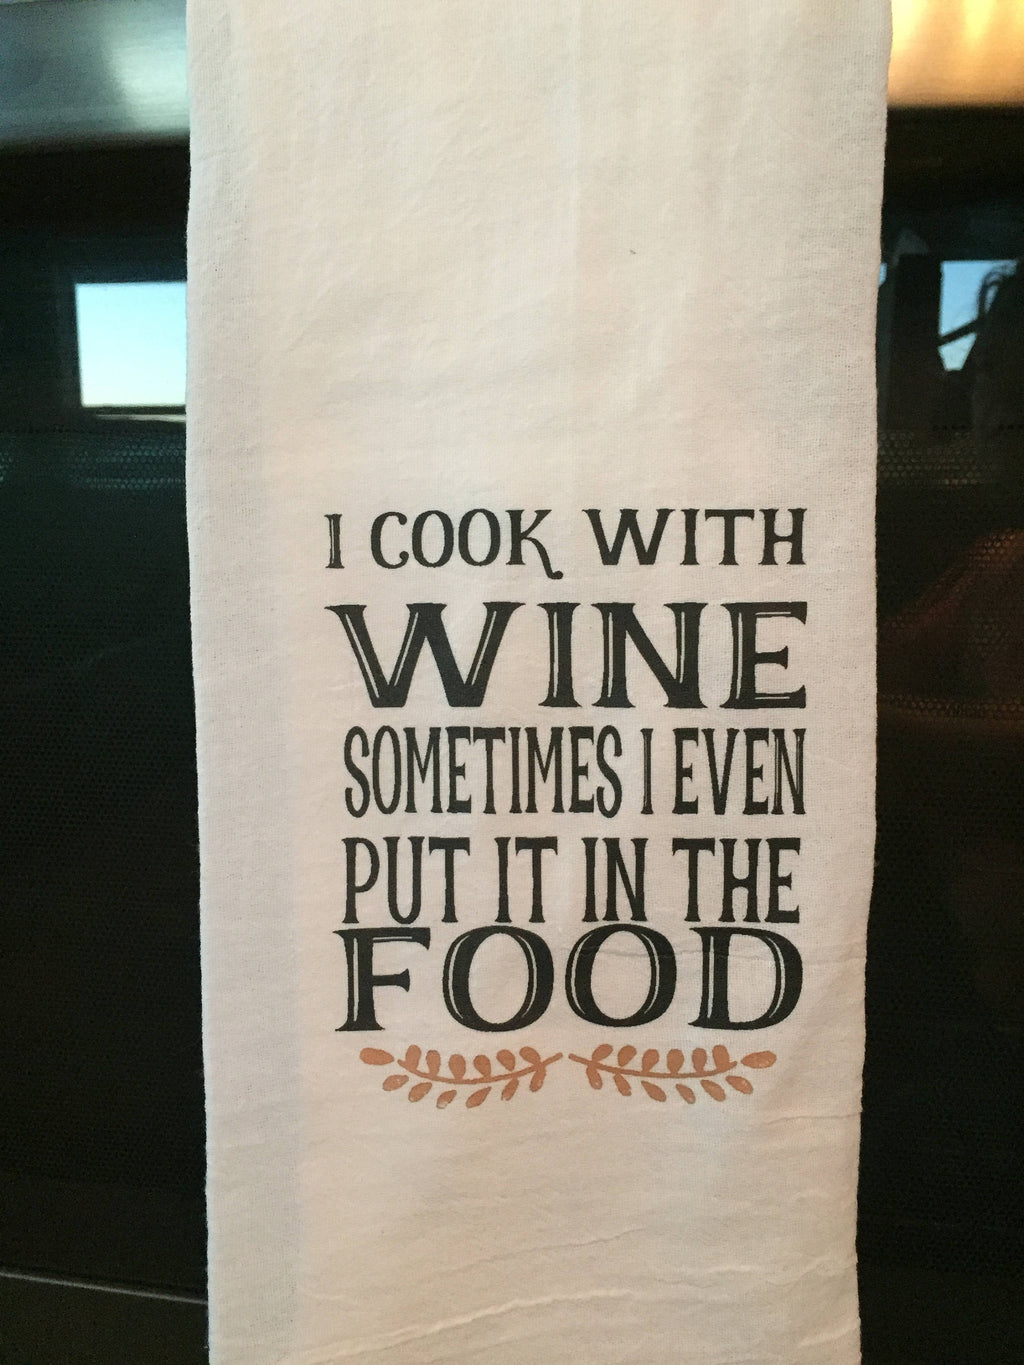 #FS106 I cook with wine funny TEA TOWEL